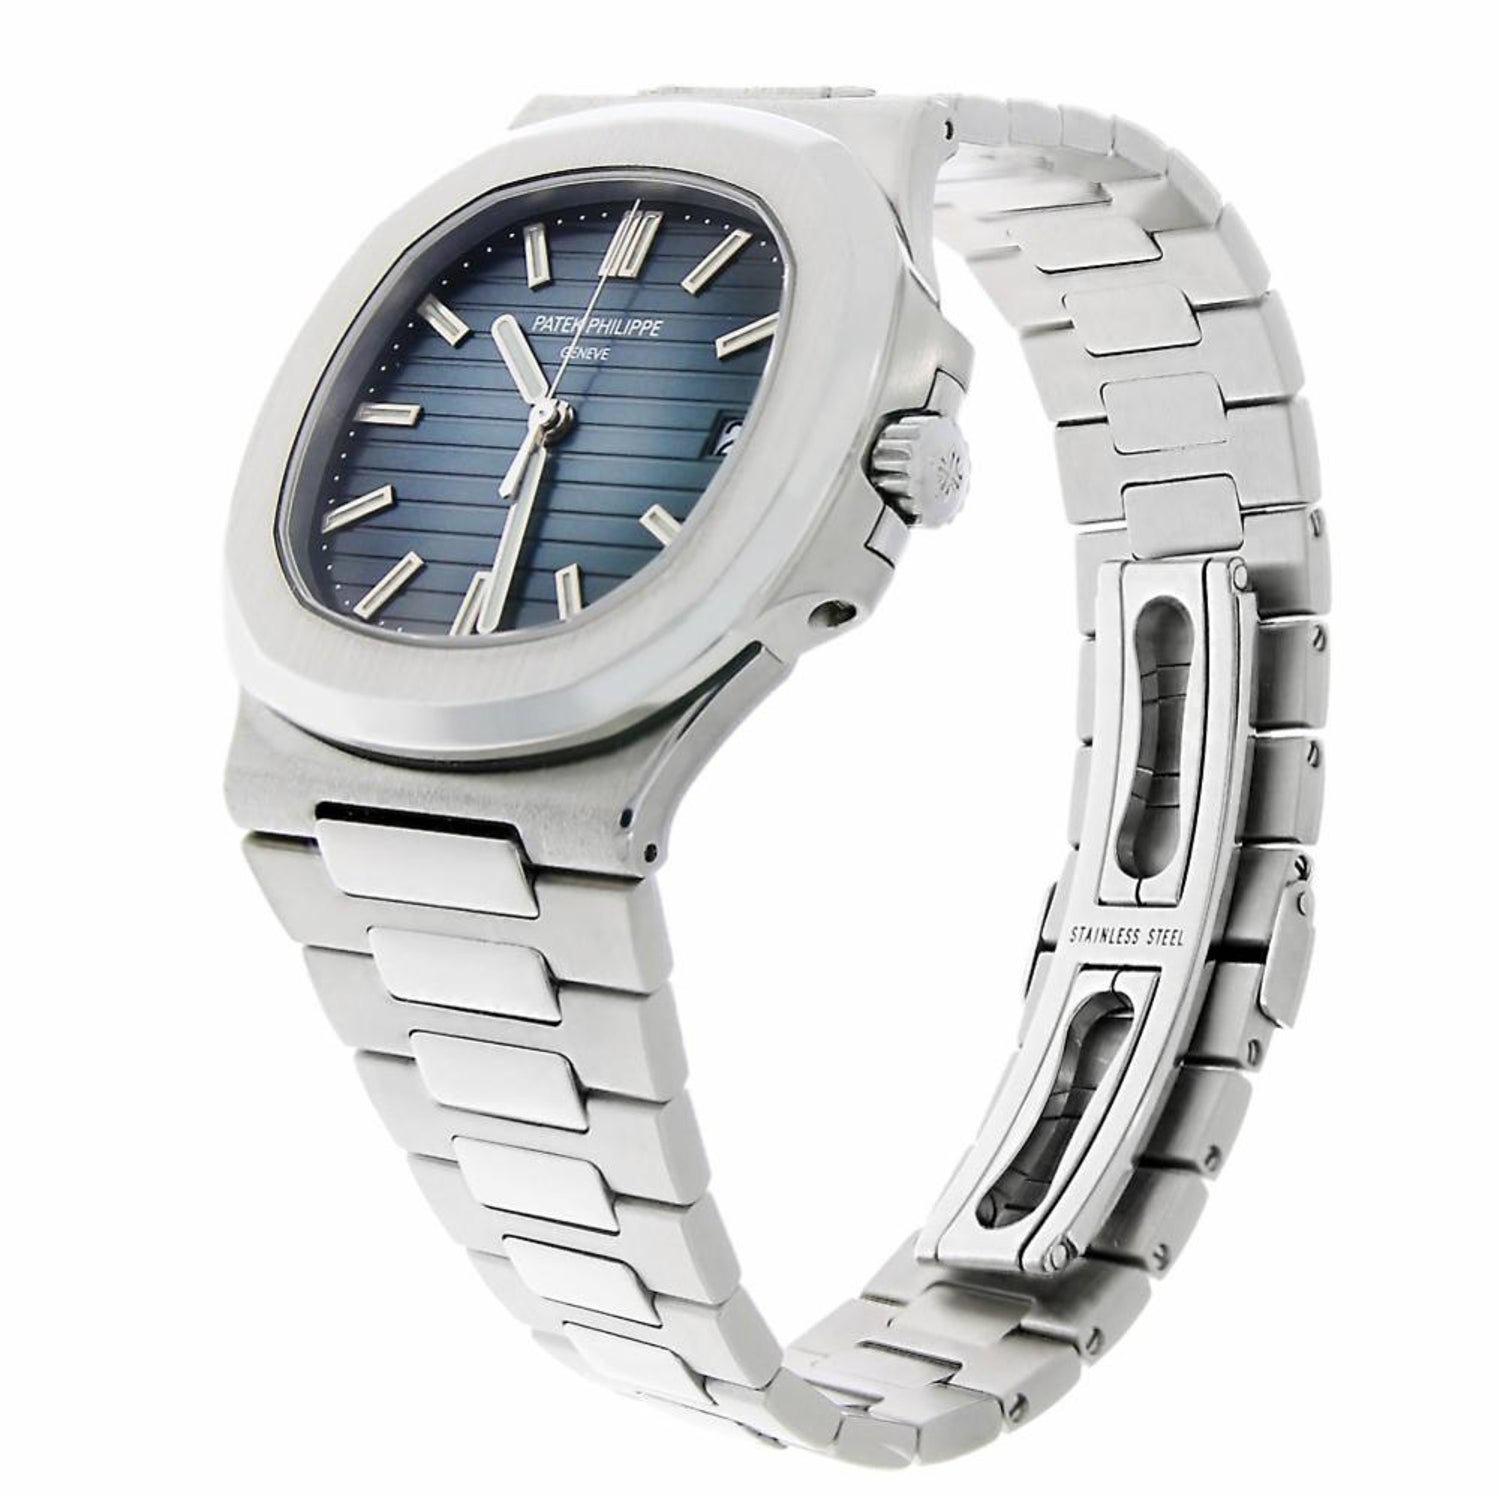 4bc64c5f109 Patek Philippe Nautilus Stainless Steel Blue Dial Watch 5711/1A-010 For  Sale at 1stdibs